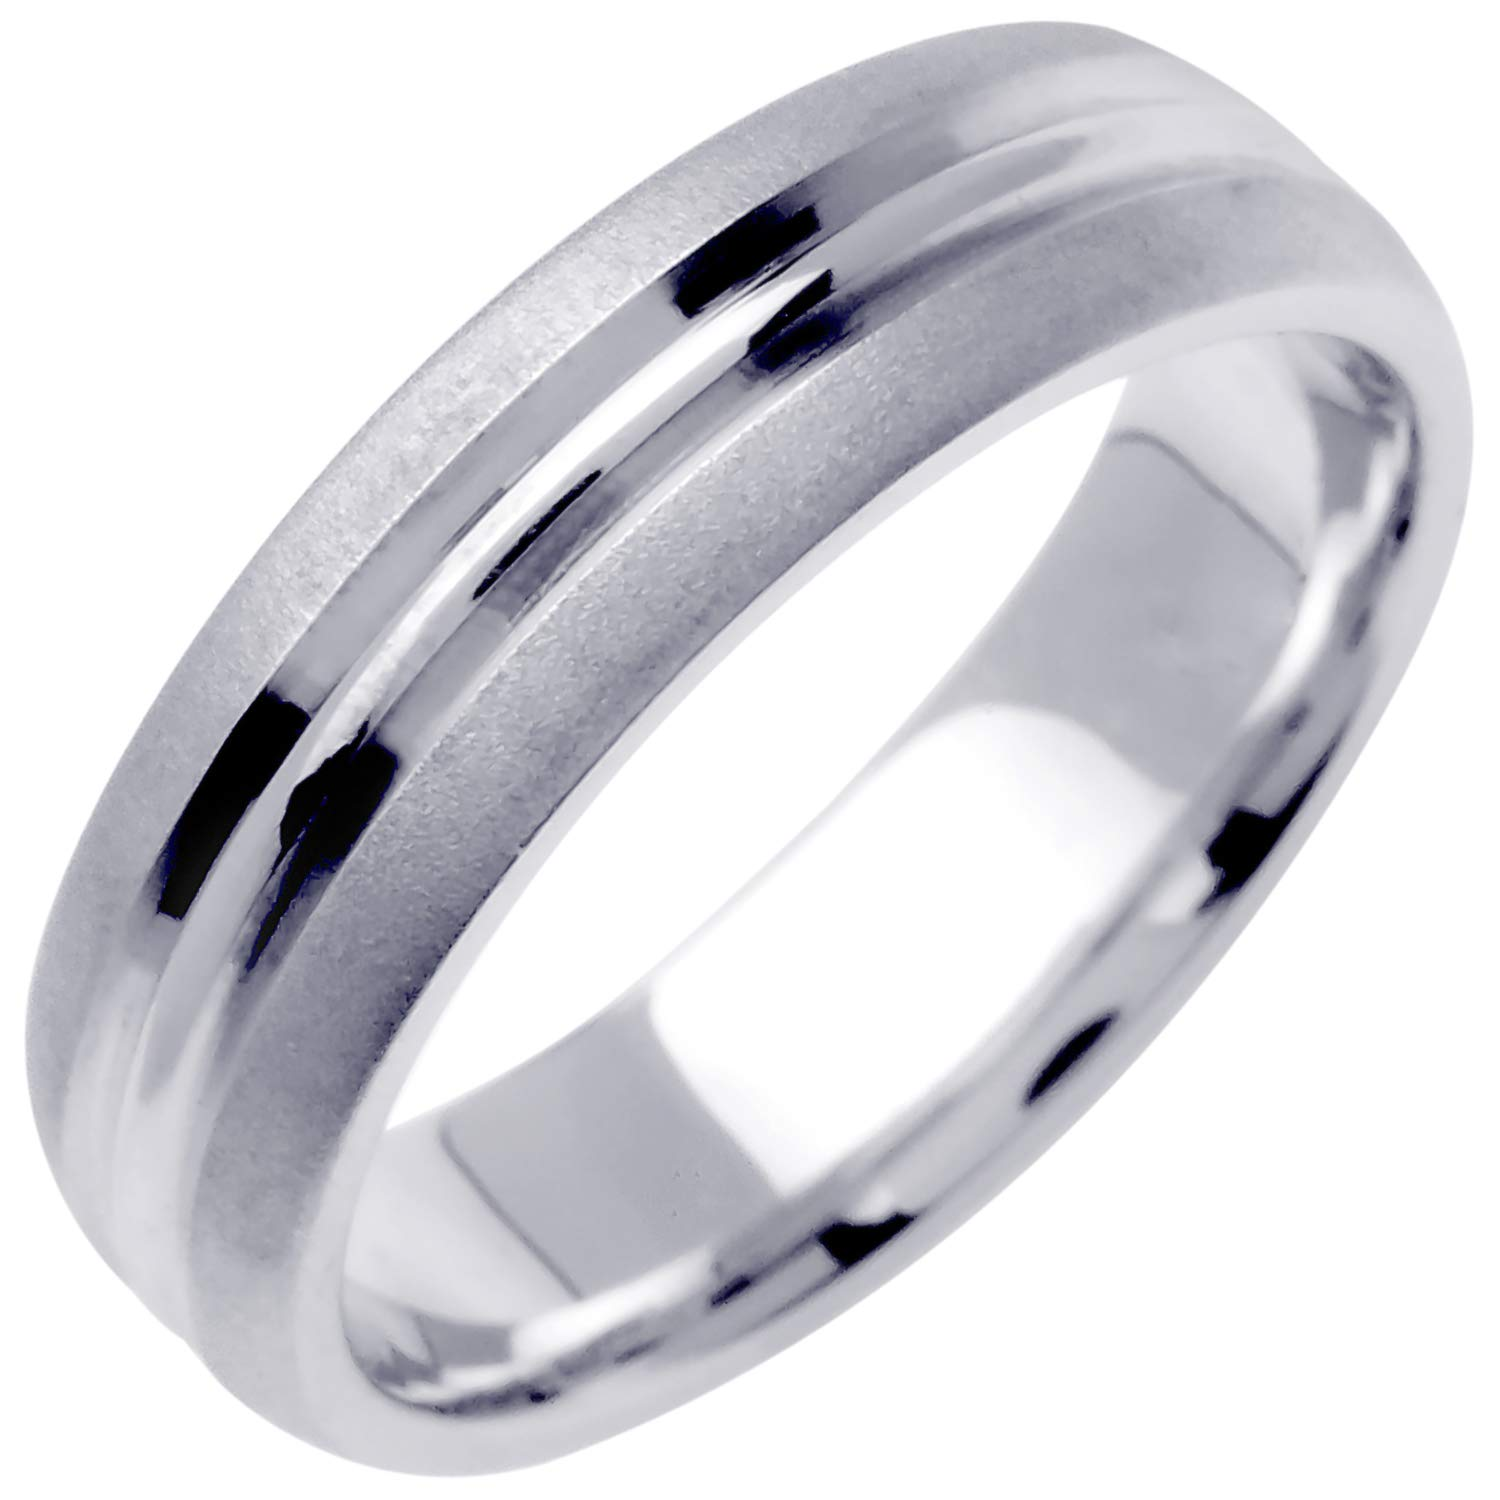 14K White Gold Center Stripe Men's Comfort Fit Wedding Band (6.5mm) Size-10c1 by Wedding Rings Depot